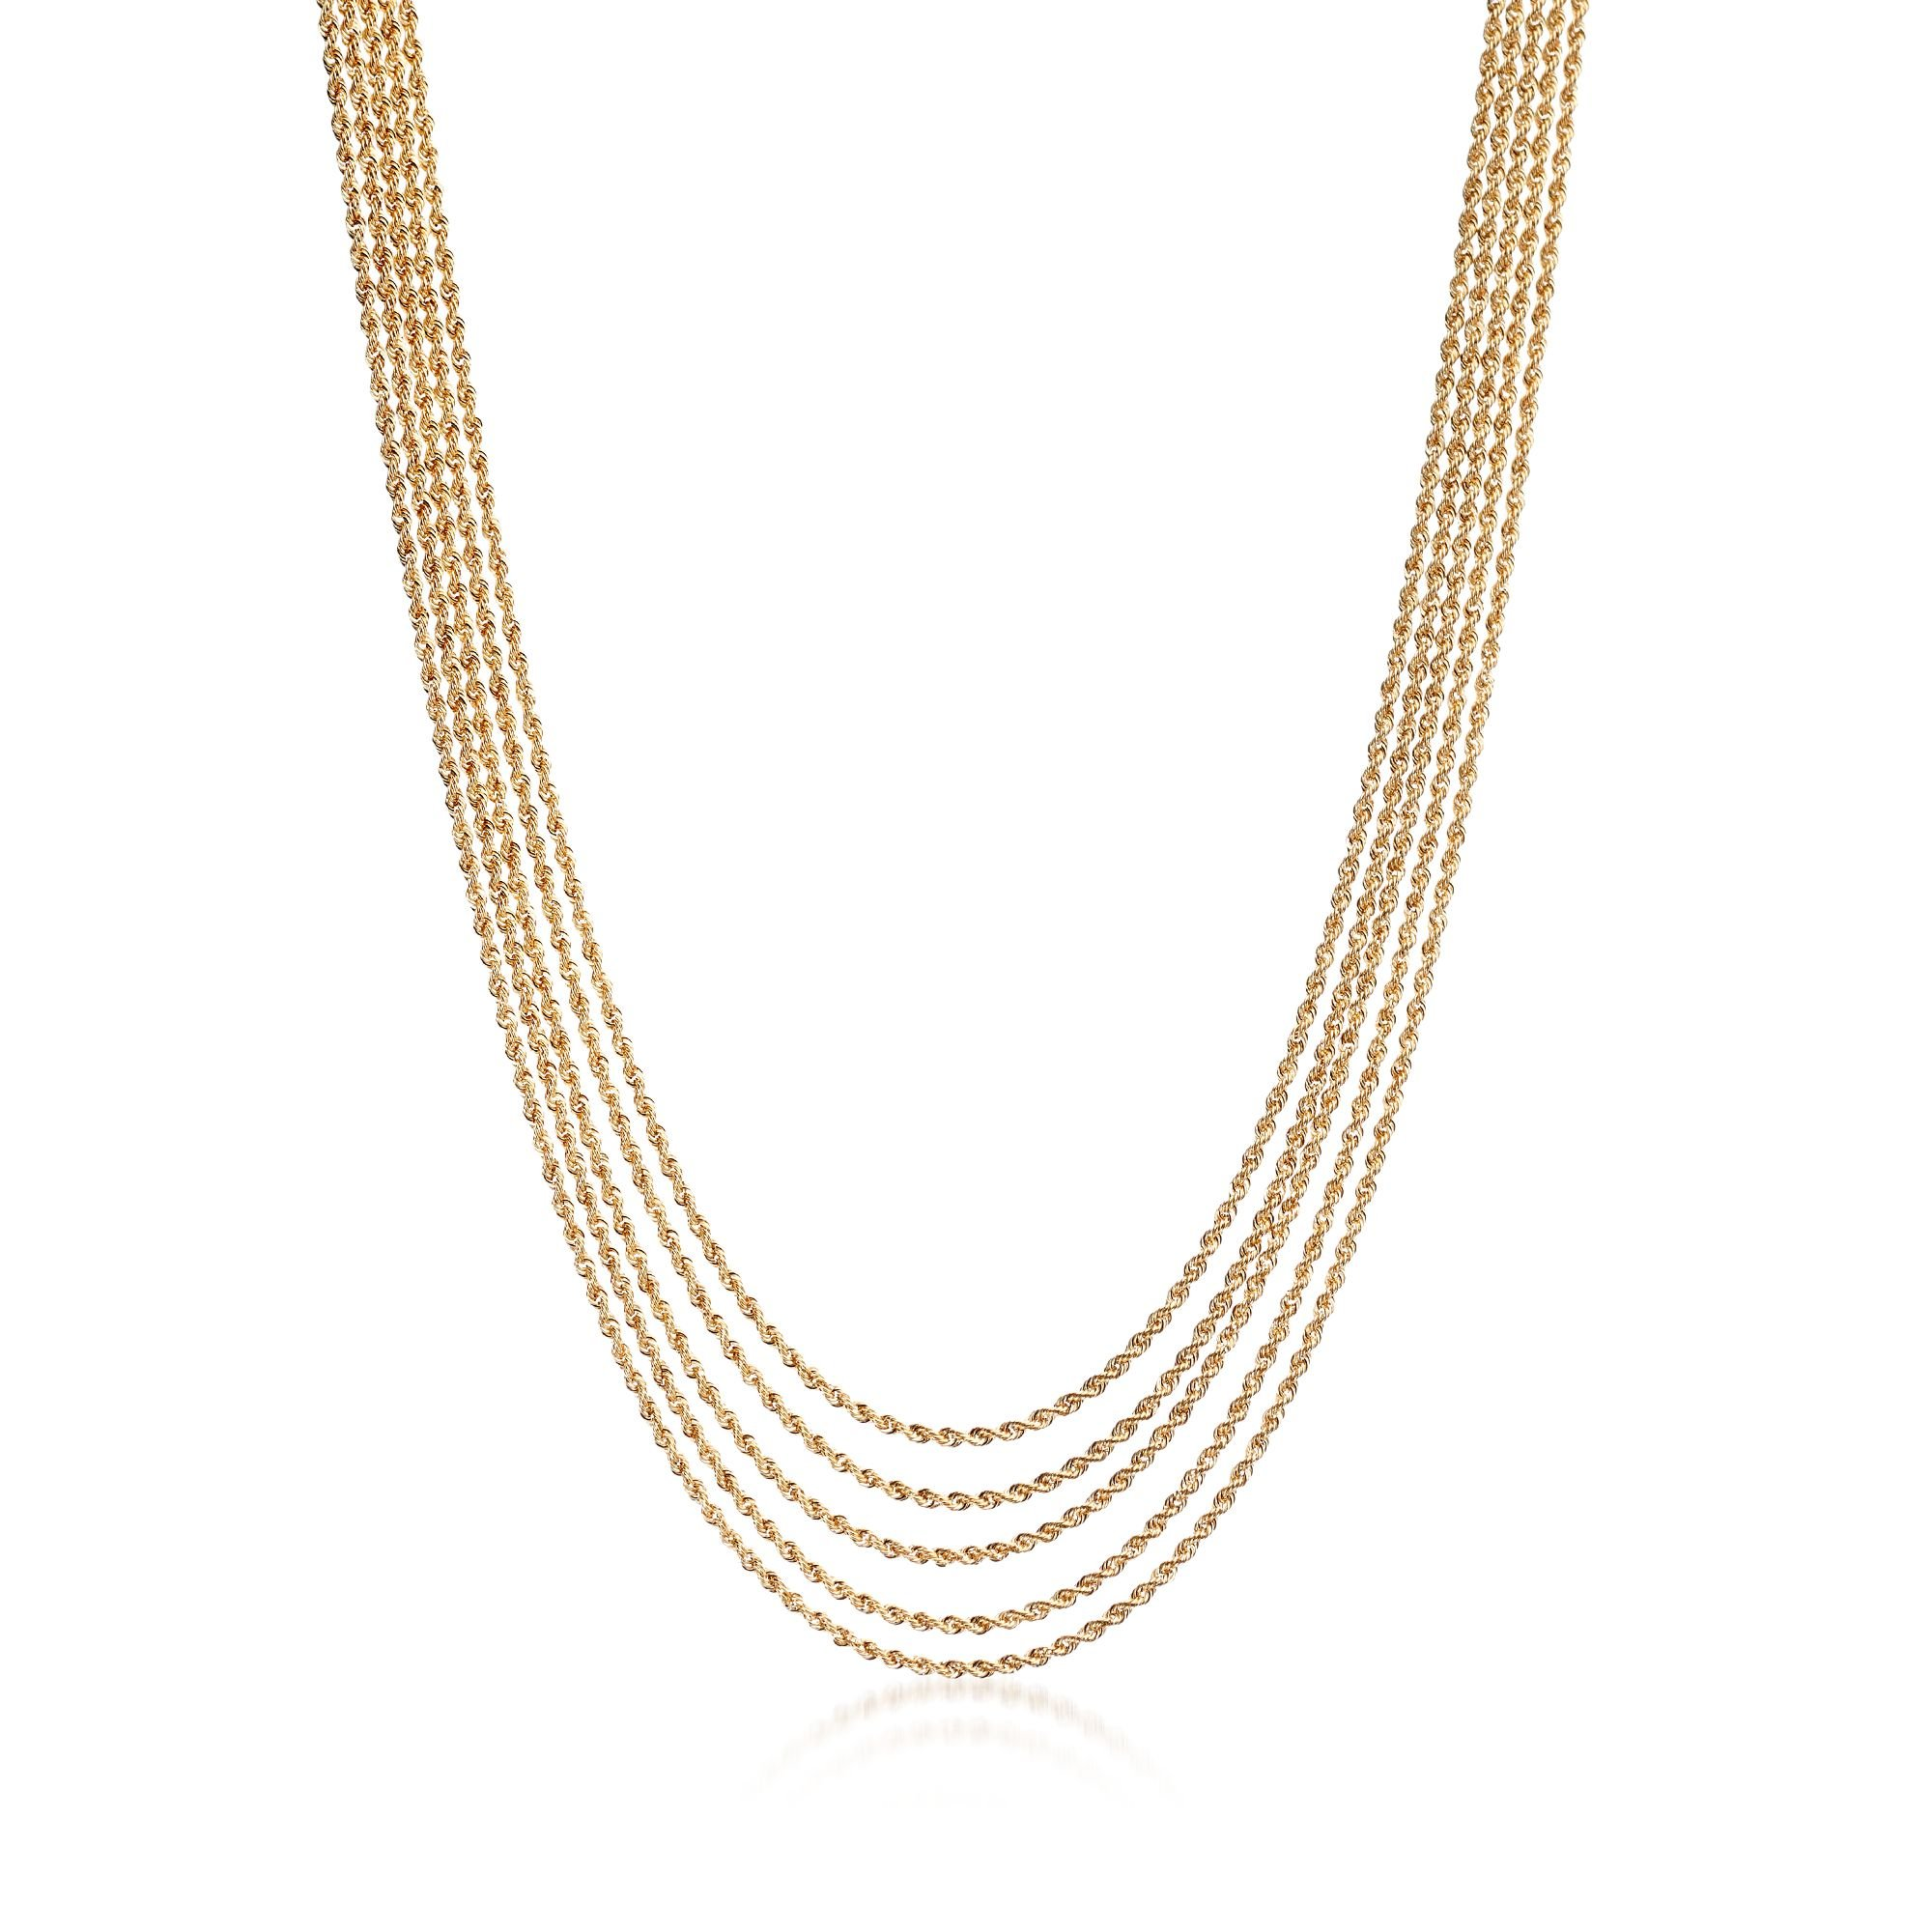 Ross-Simons Italian 14kt Yellow Gold Multi-Strand Layered-Style Rope Necklace